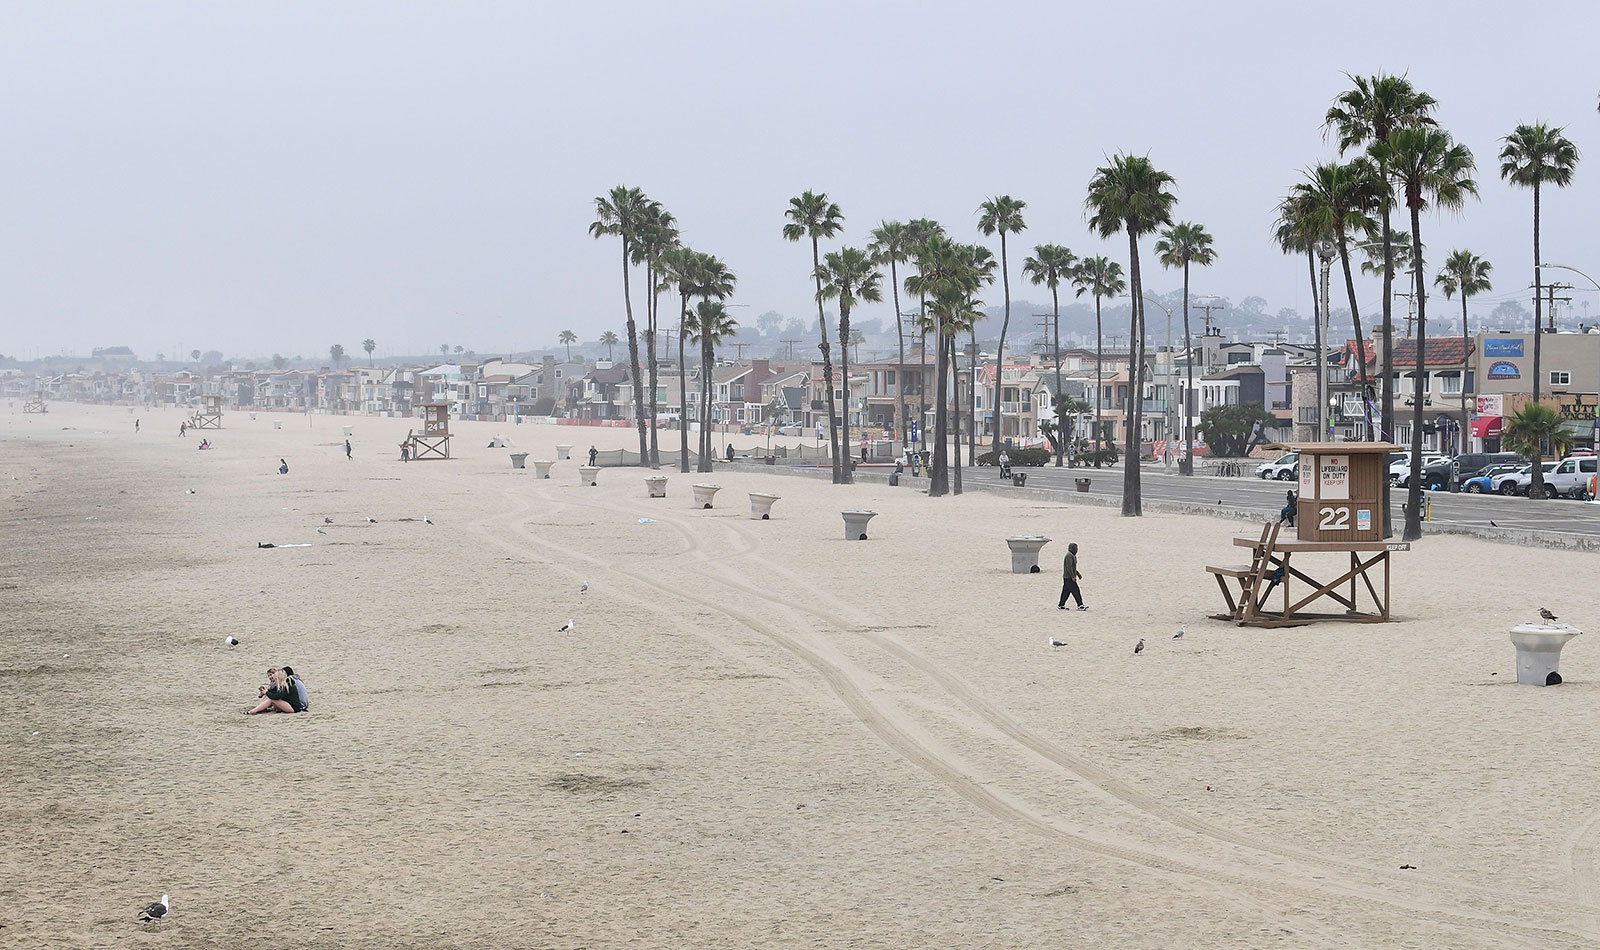 A nearly empty beach in Newport Beach, California, on April 30.